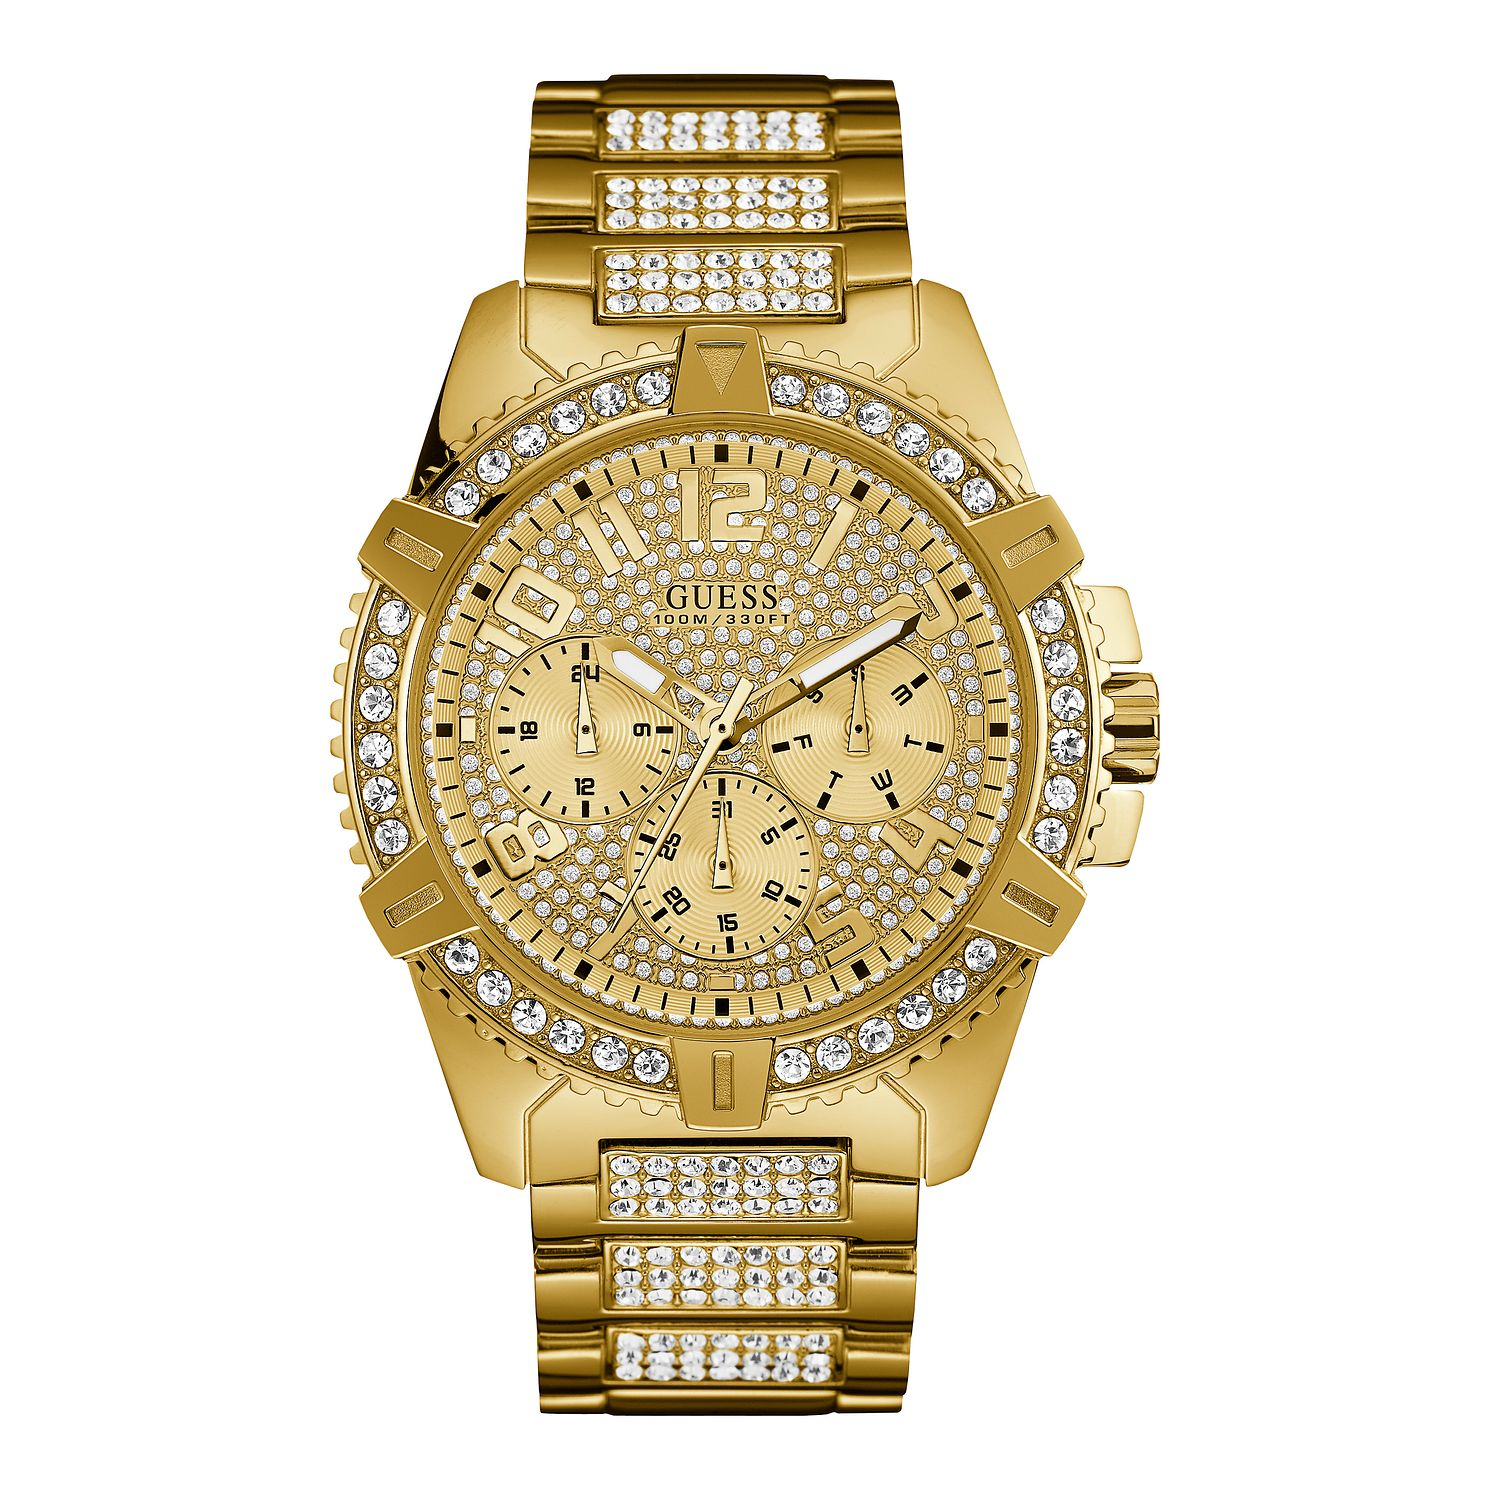 Guess Men's Crystal Dial Yellow Gold Tone Bracelet Watch - Product number 1000772